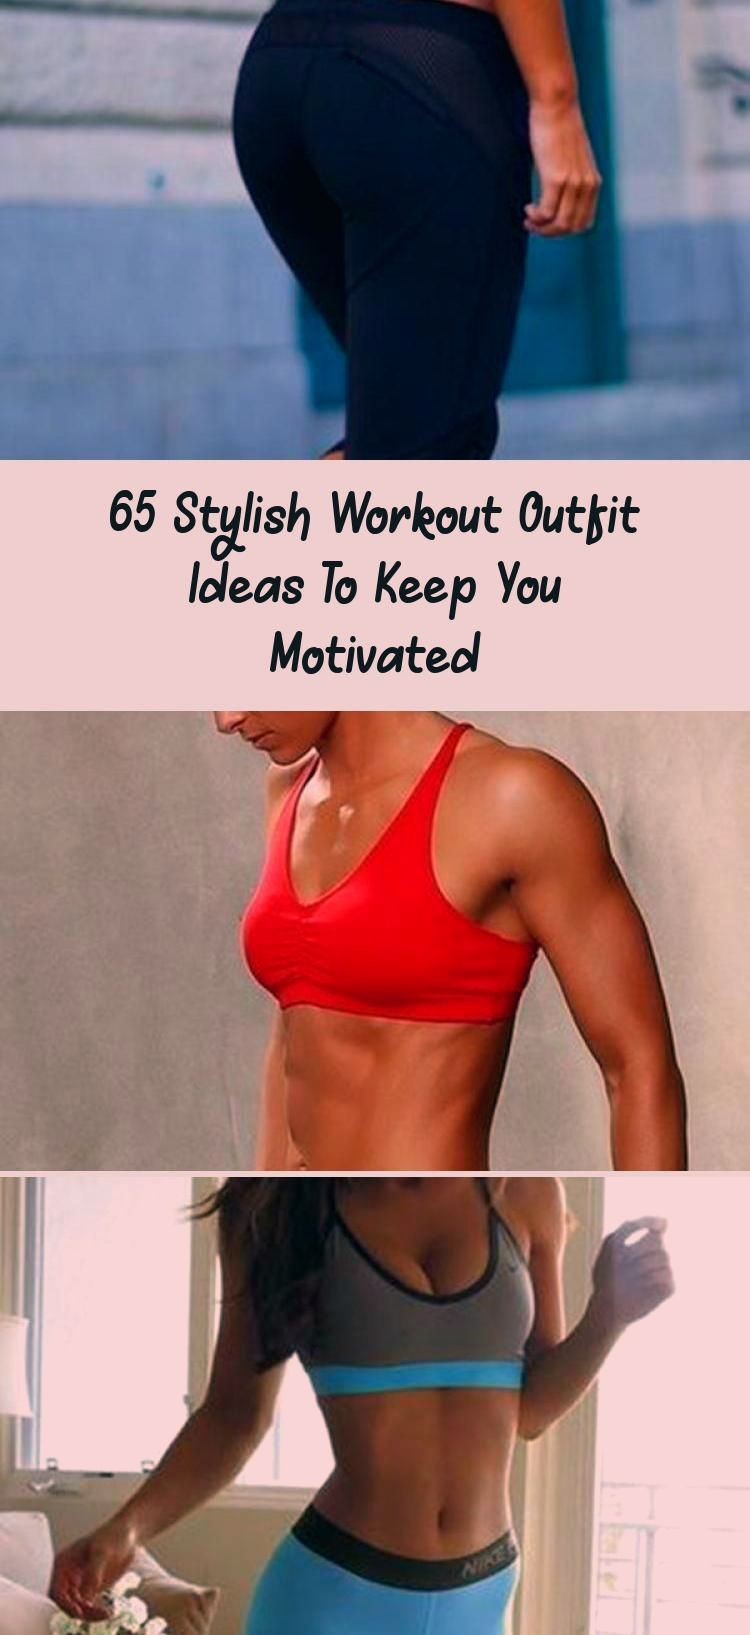 65 Stylish Workout Outfit Ideas To Keep You Motivated #Workout #Outfit #womensfitnessinspirationBeau...